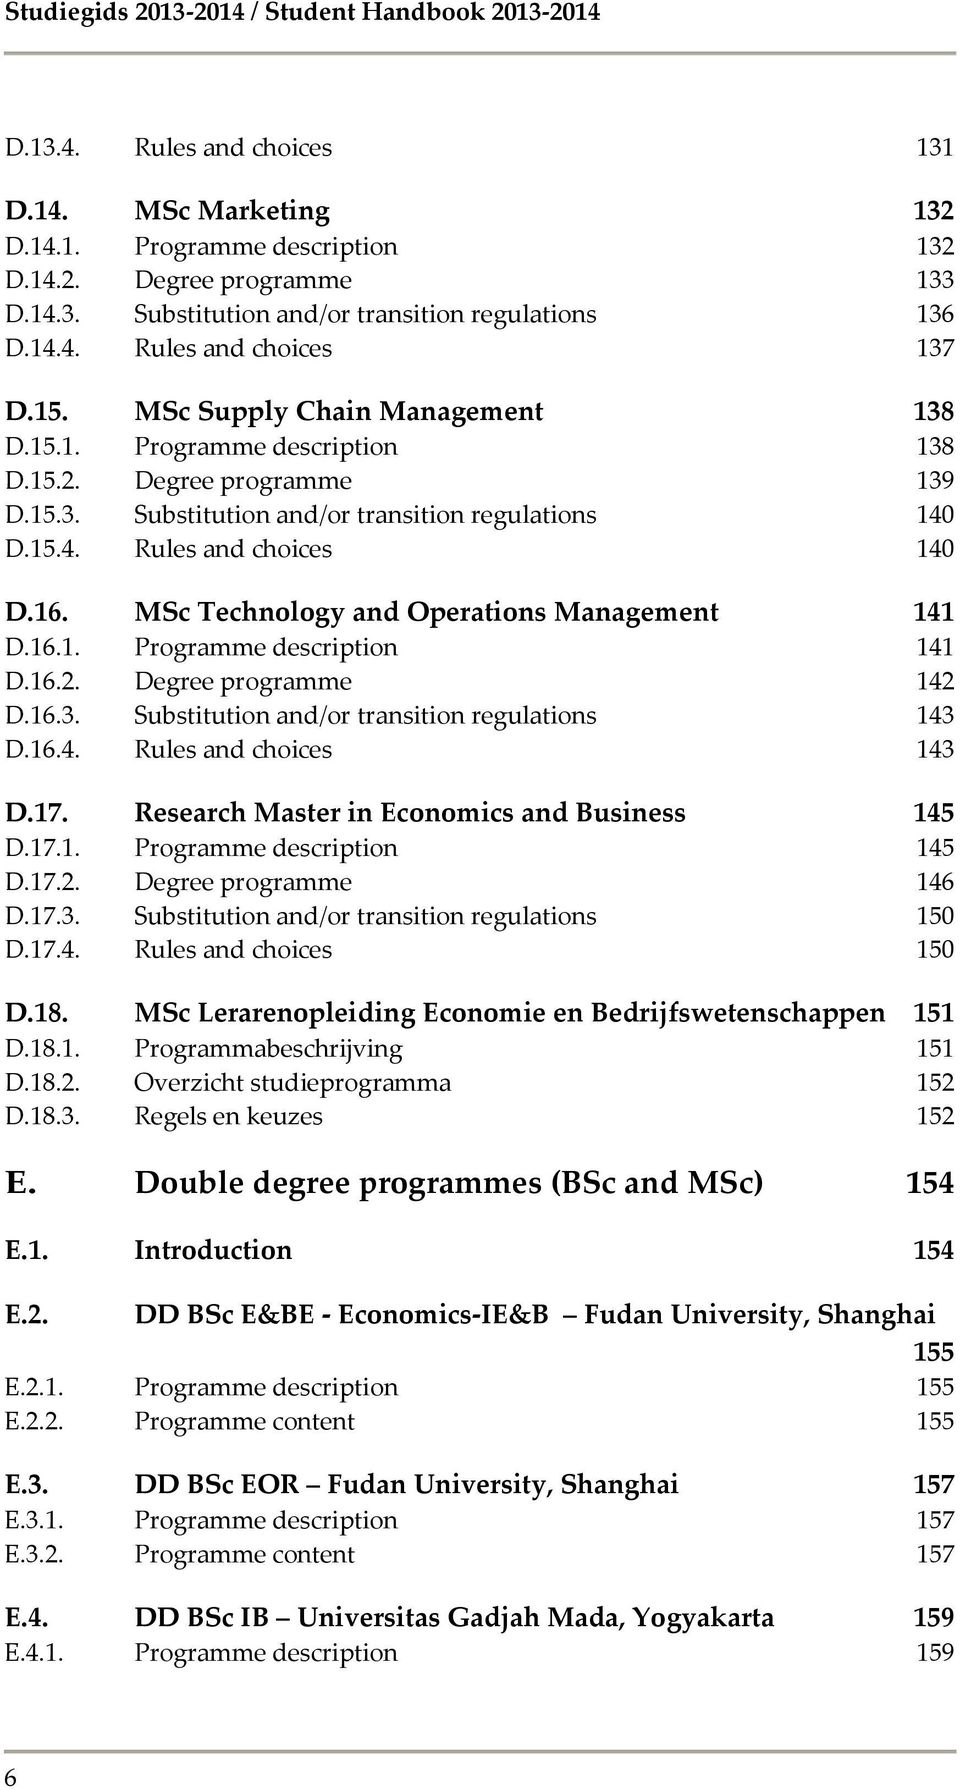 16. MSc Technology and Operations Management 141 D.16.1. Programme description 141 D.16.2. Degree programme 142 D.16.3. Substitution and/or transition regulations 143 D.16.4. Rules and choices 143 D.